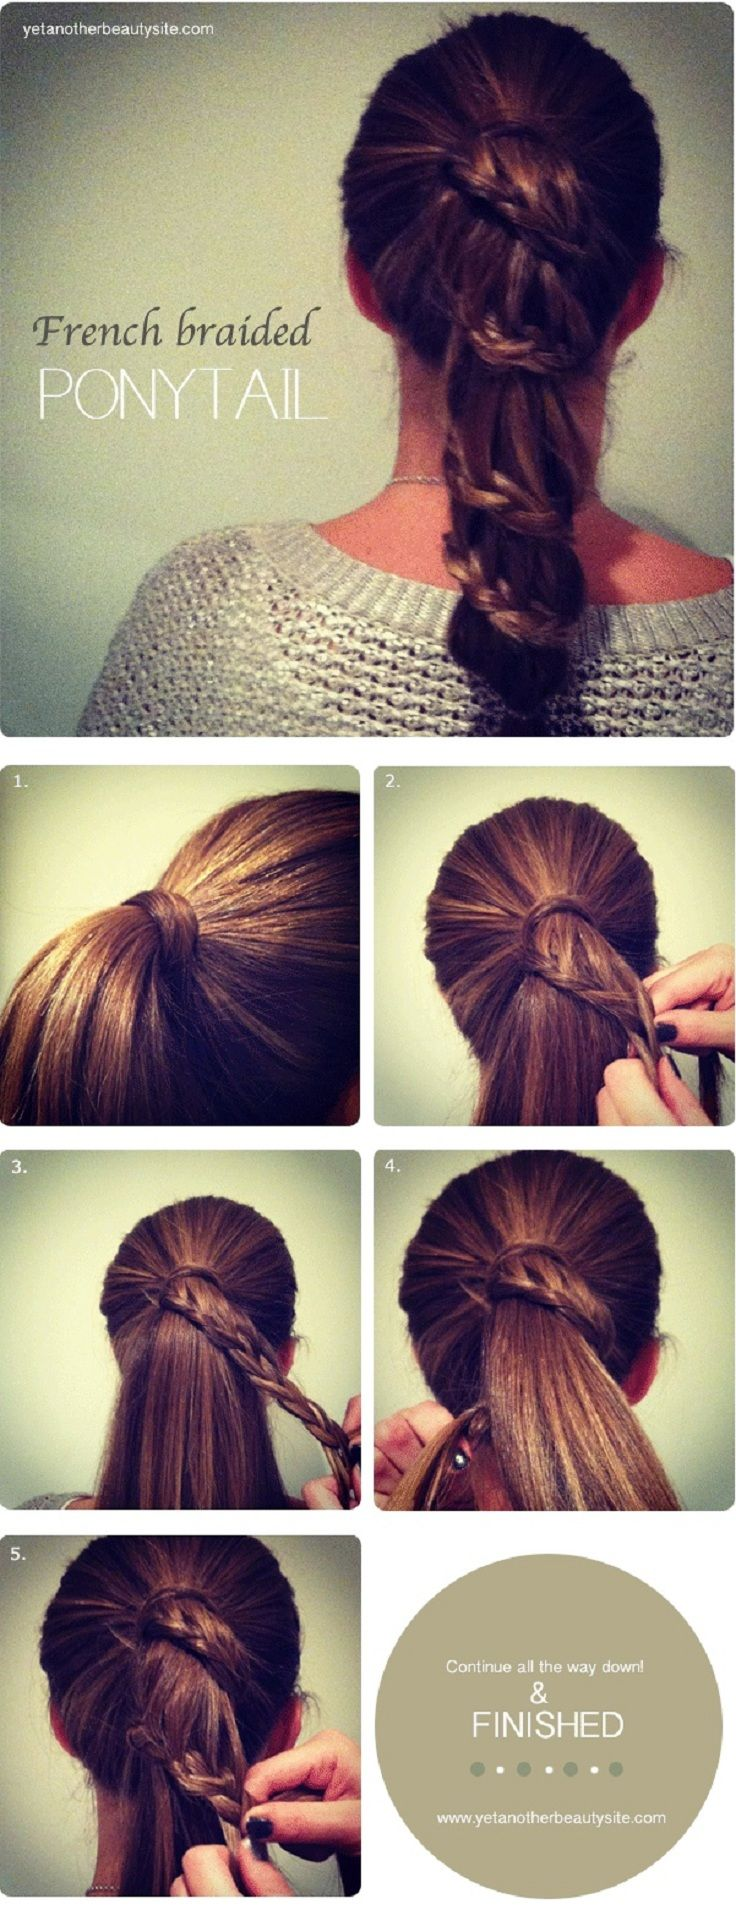 top 10 hairstyle tutorials for this fall | thicker hair, ponytail